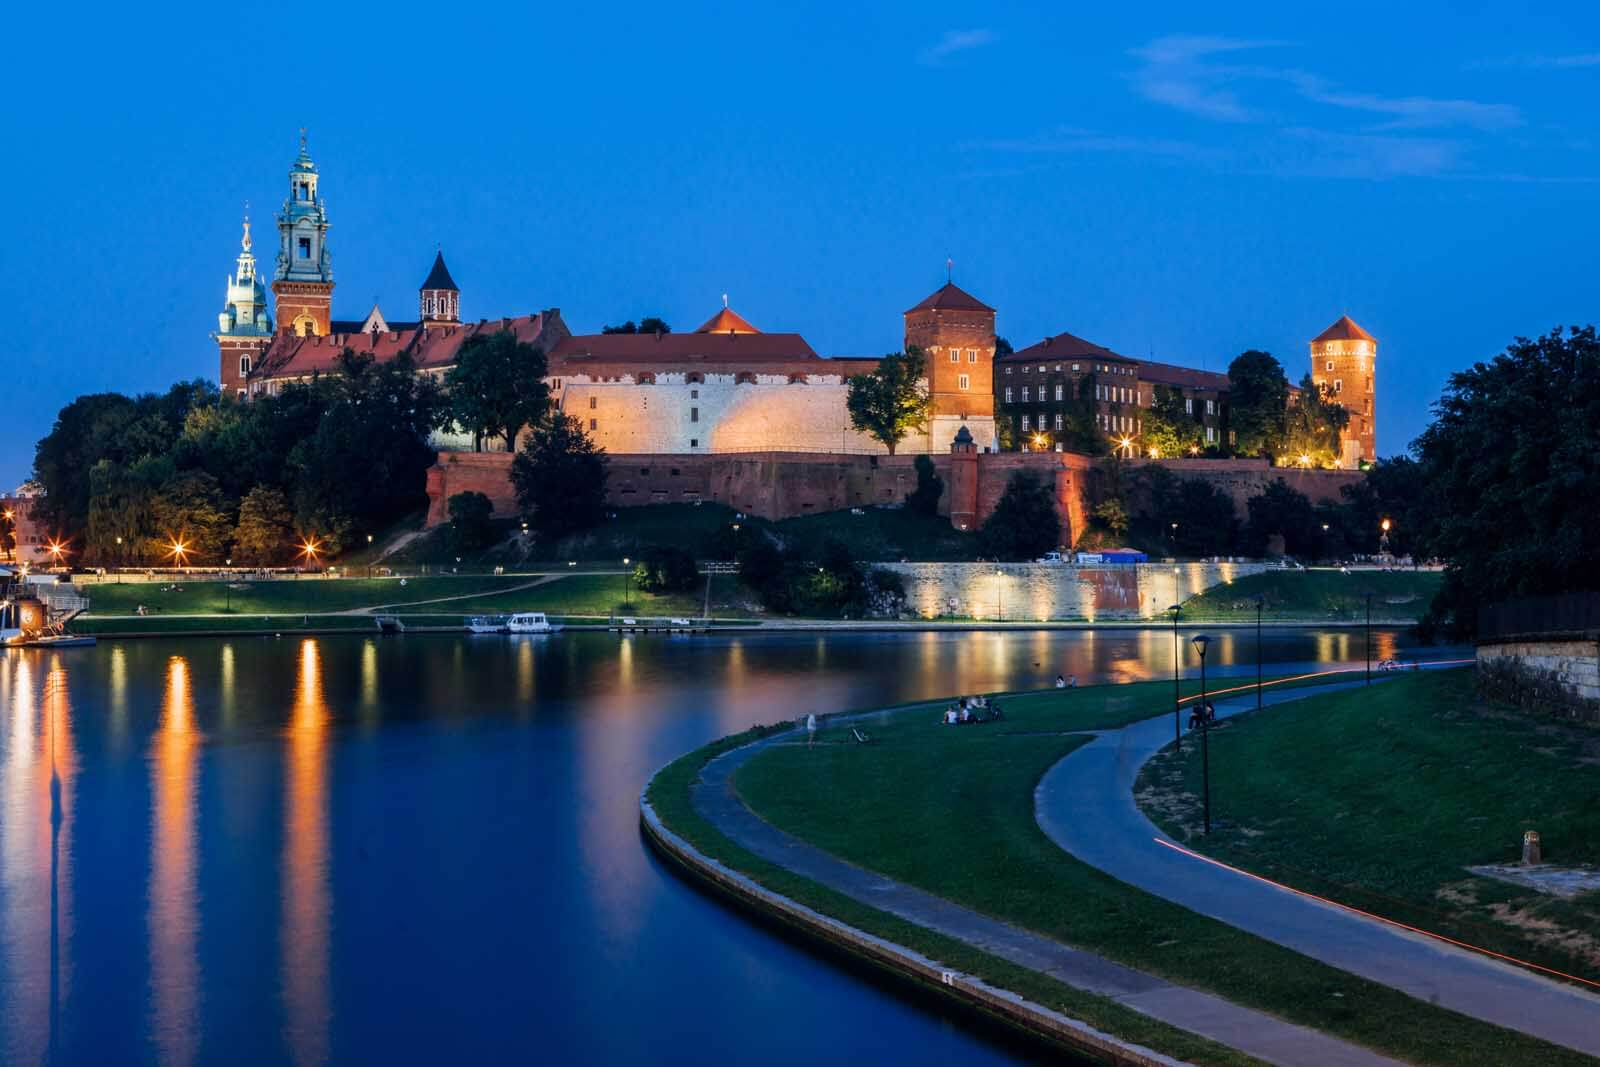 view of the Vistula River in Krakow at night